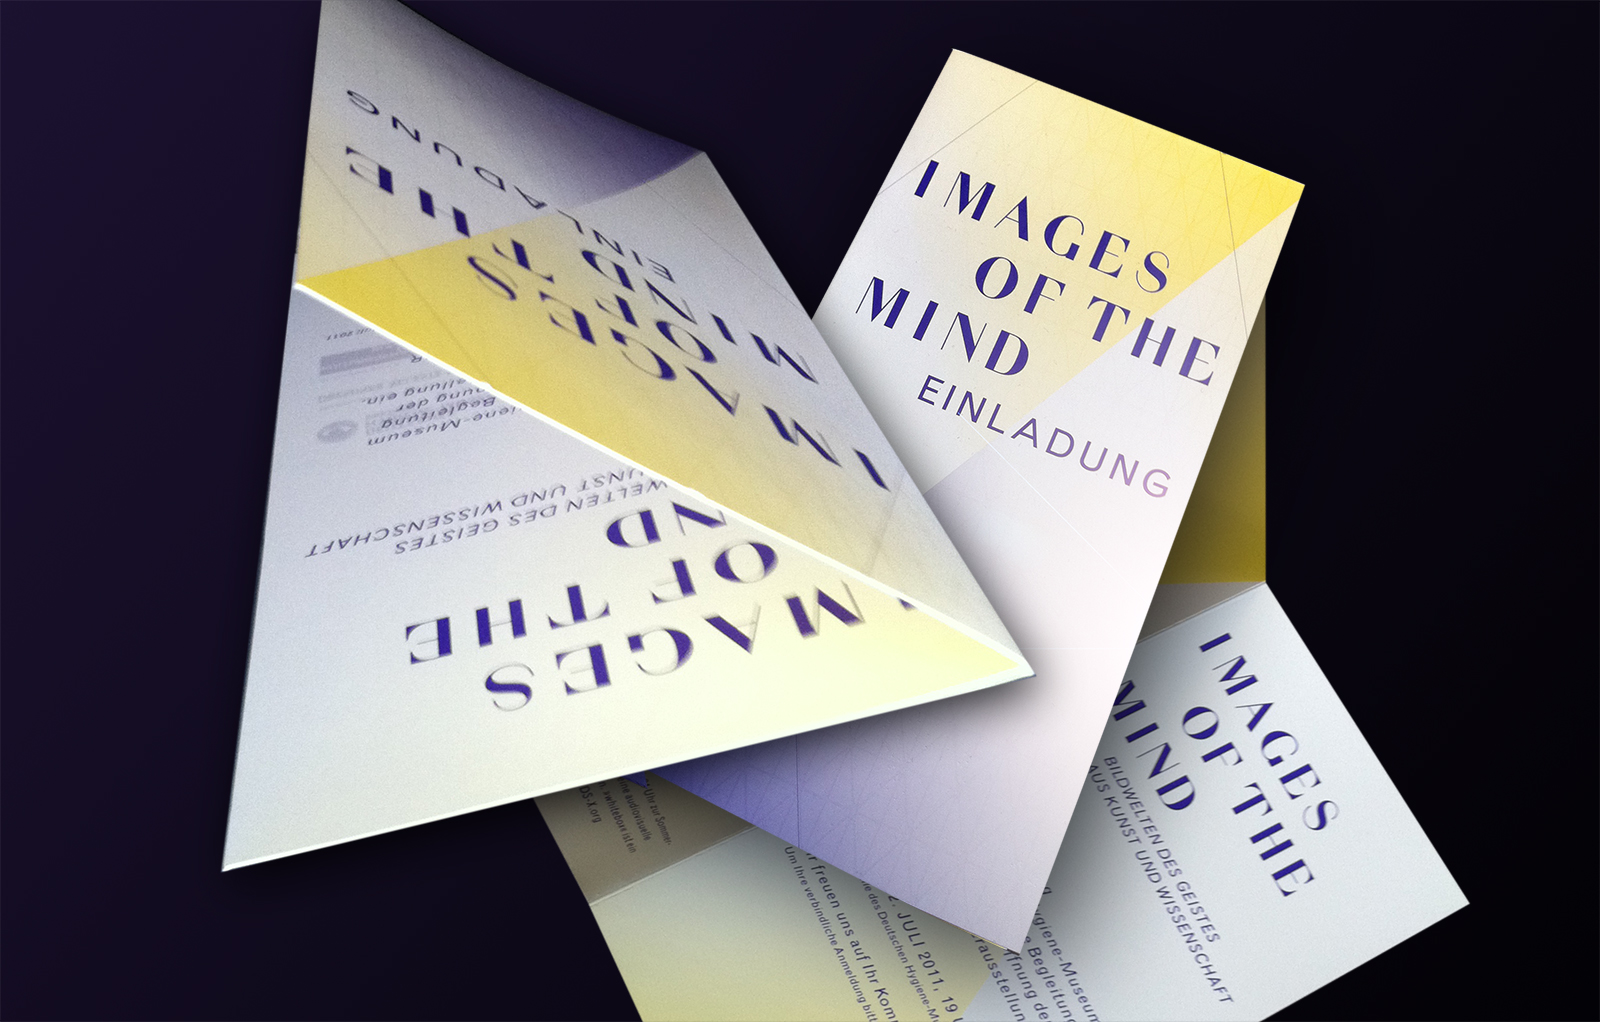 Images of the mind /